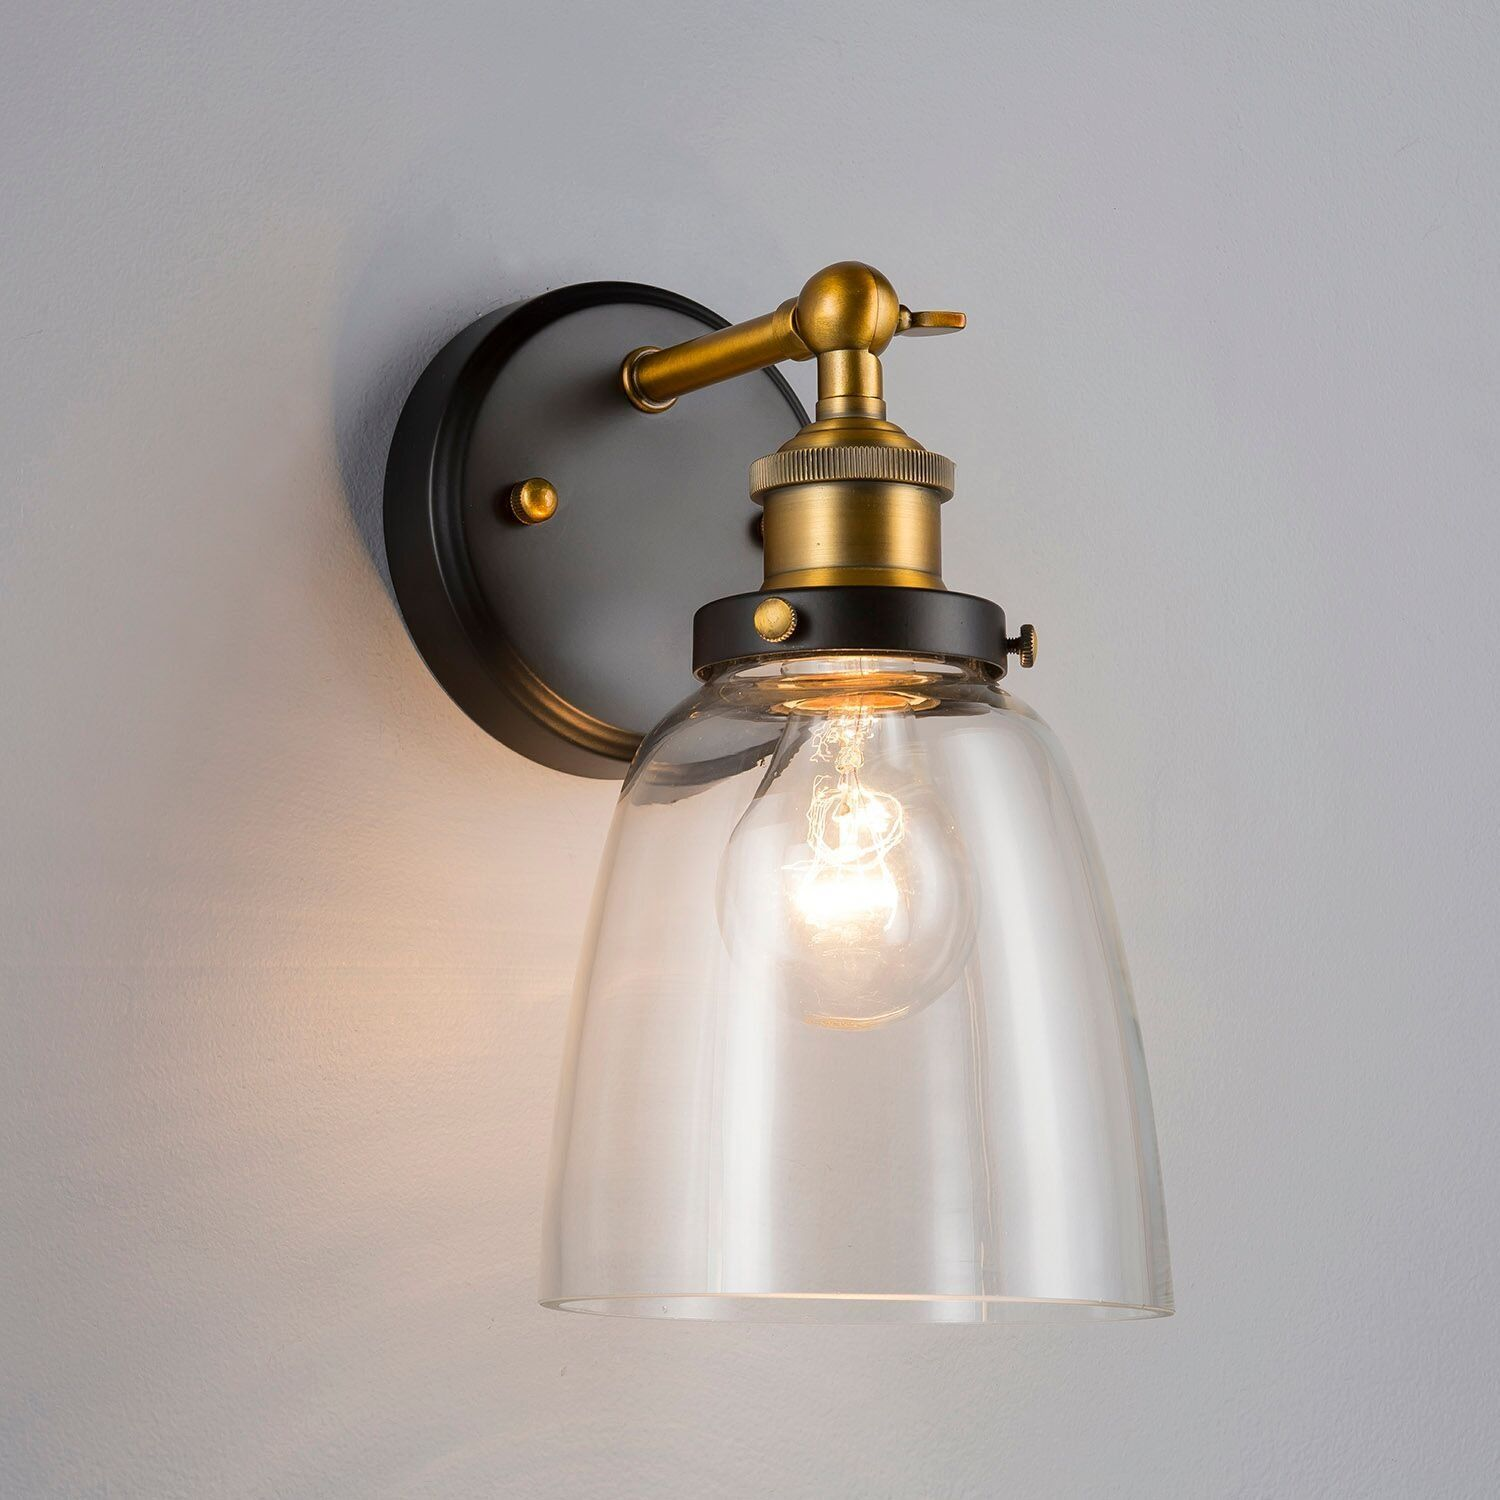 Fiorentino One-Light Wall Vanity Corridor Sconce Lamp With LED Edison Bulb  Included. Brushed